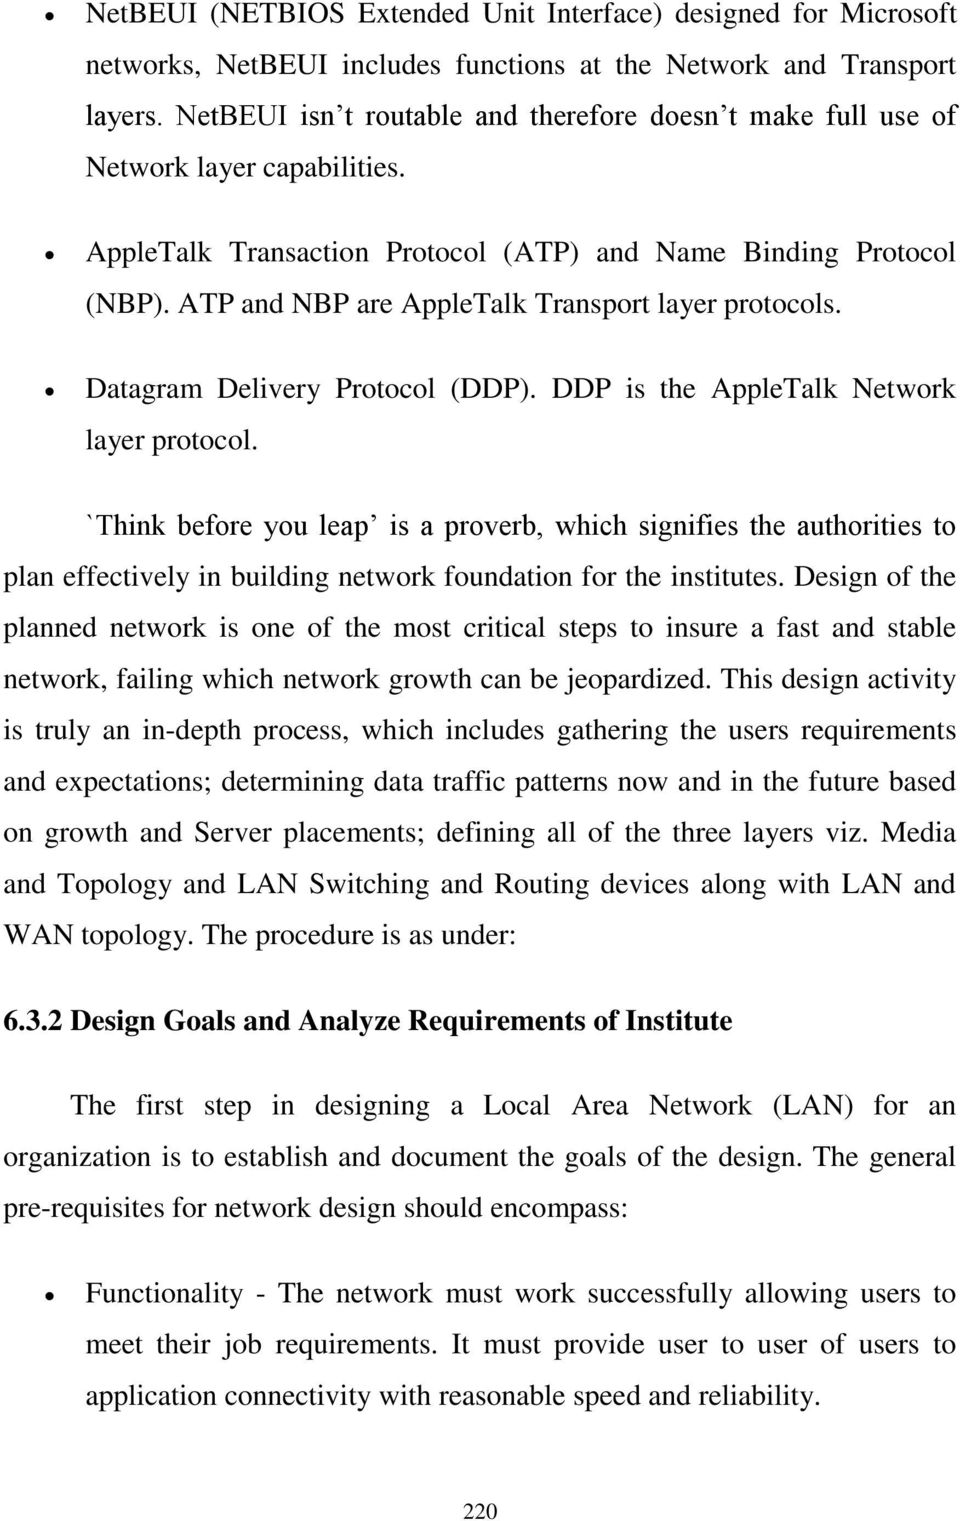 ATP and NBP are AppleTalk Transport layer protocols. Datagram Delivery Protocol (DDP). DDP is the AppleTalk Network layer protocol.